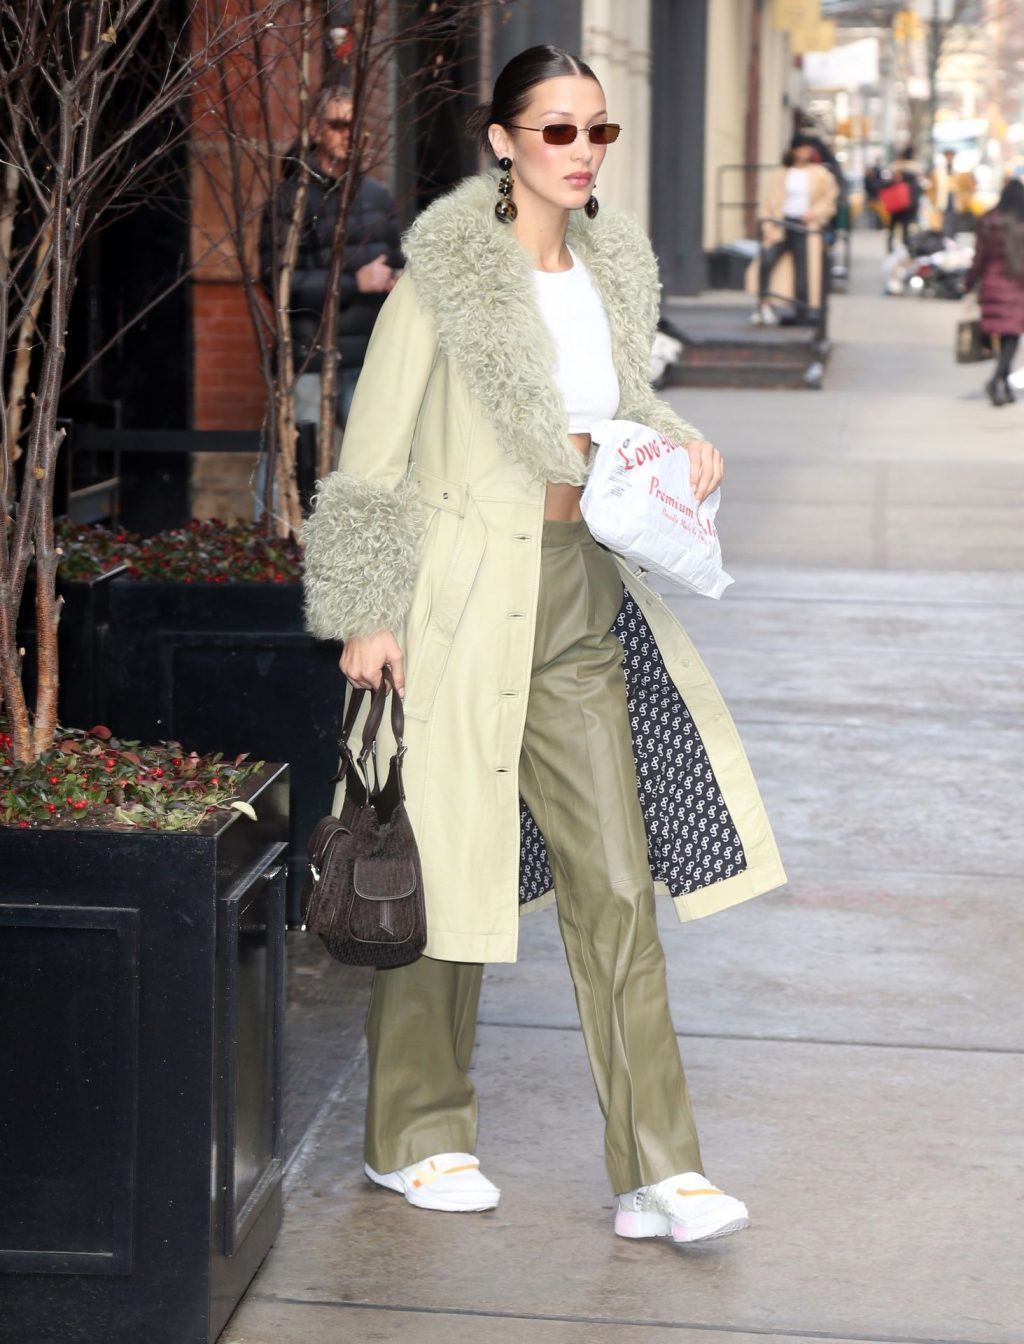 Bella Hadid See through The Fappening Blog 45 1024x1344 - Braless Bella Hadid Arrives at the Park Avenue Armory for the Marc Jacobs Fashion Show (59 Photos)